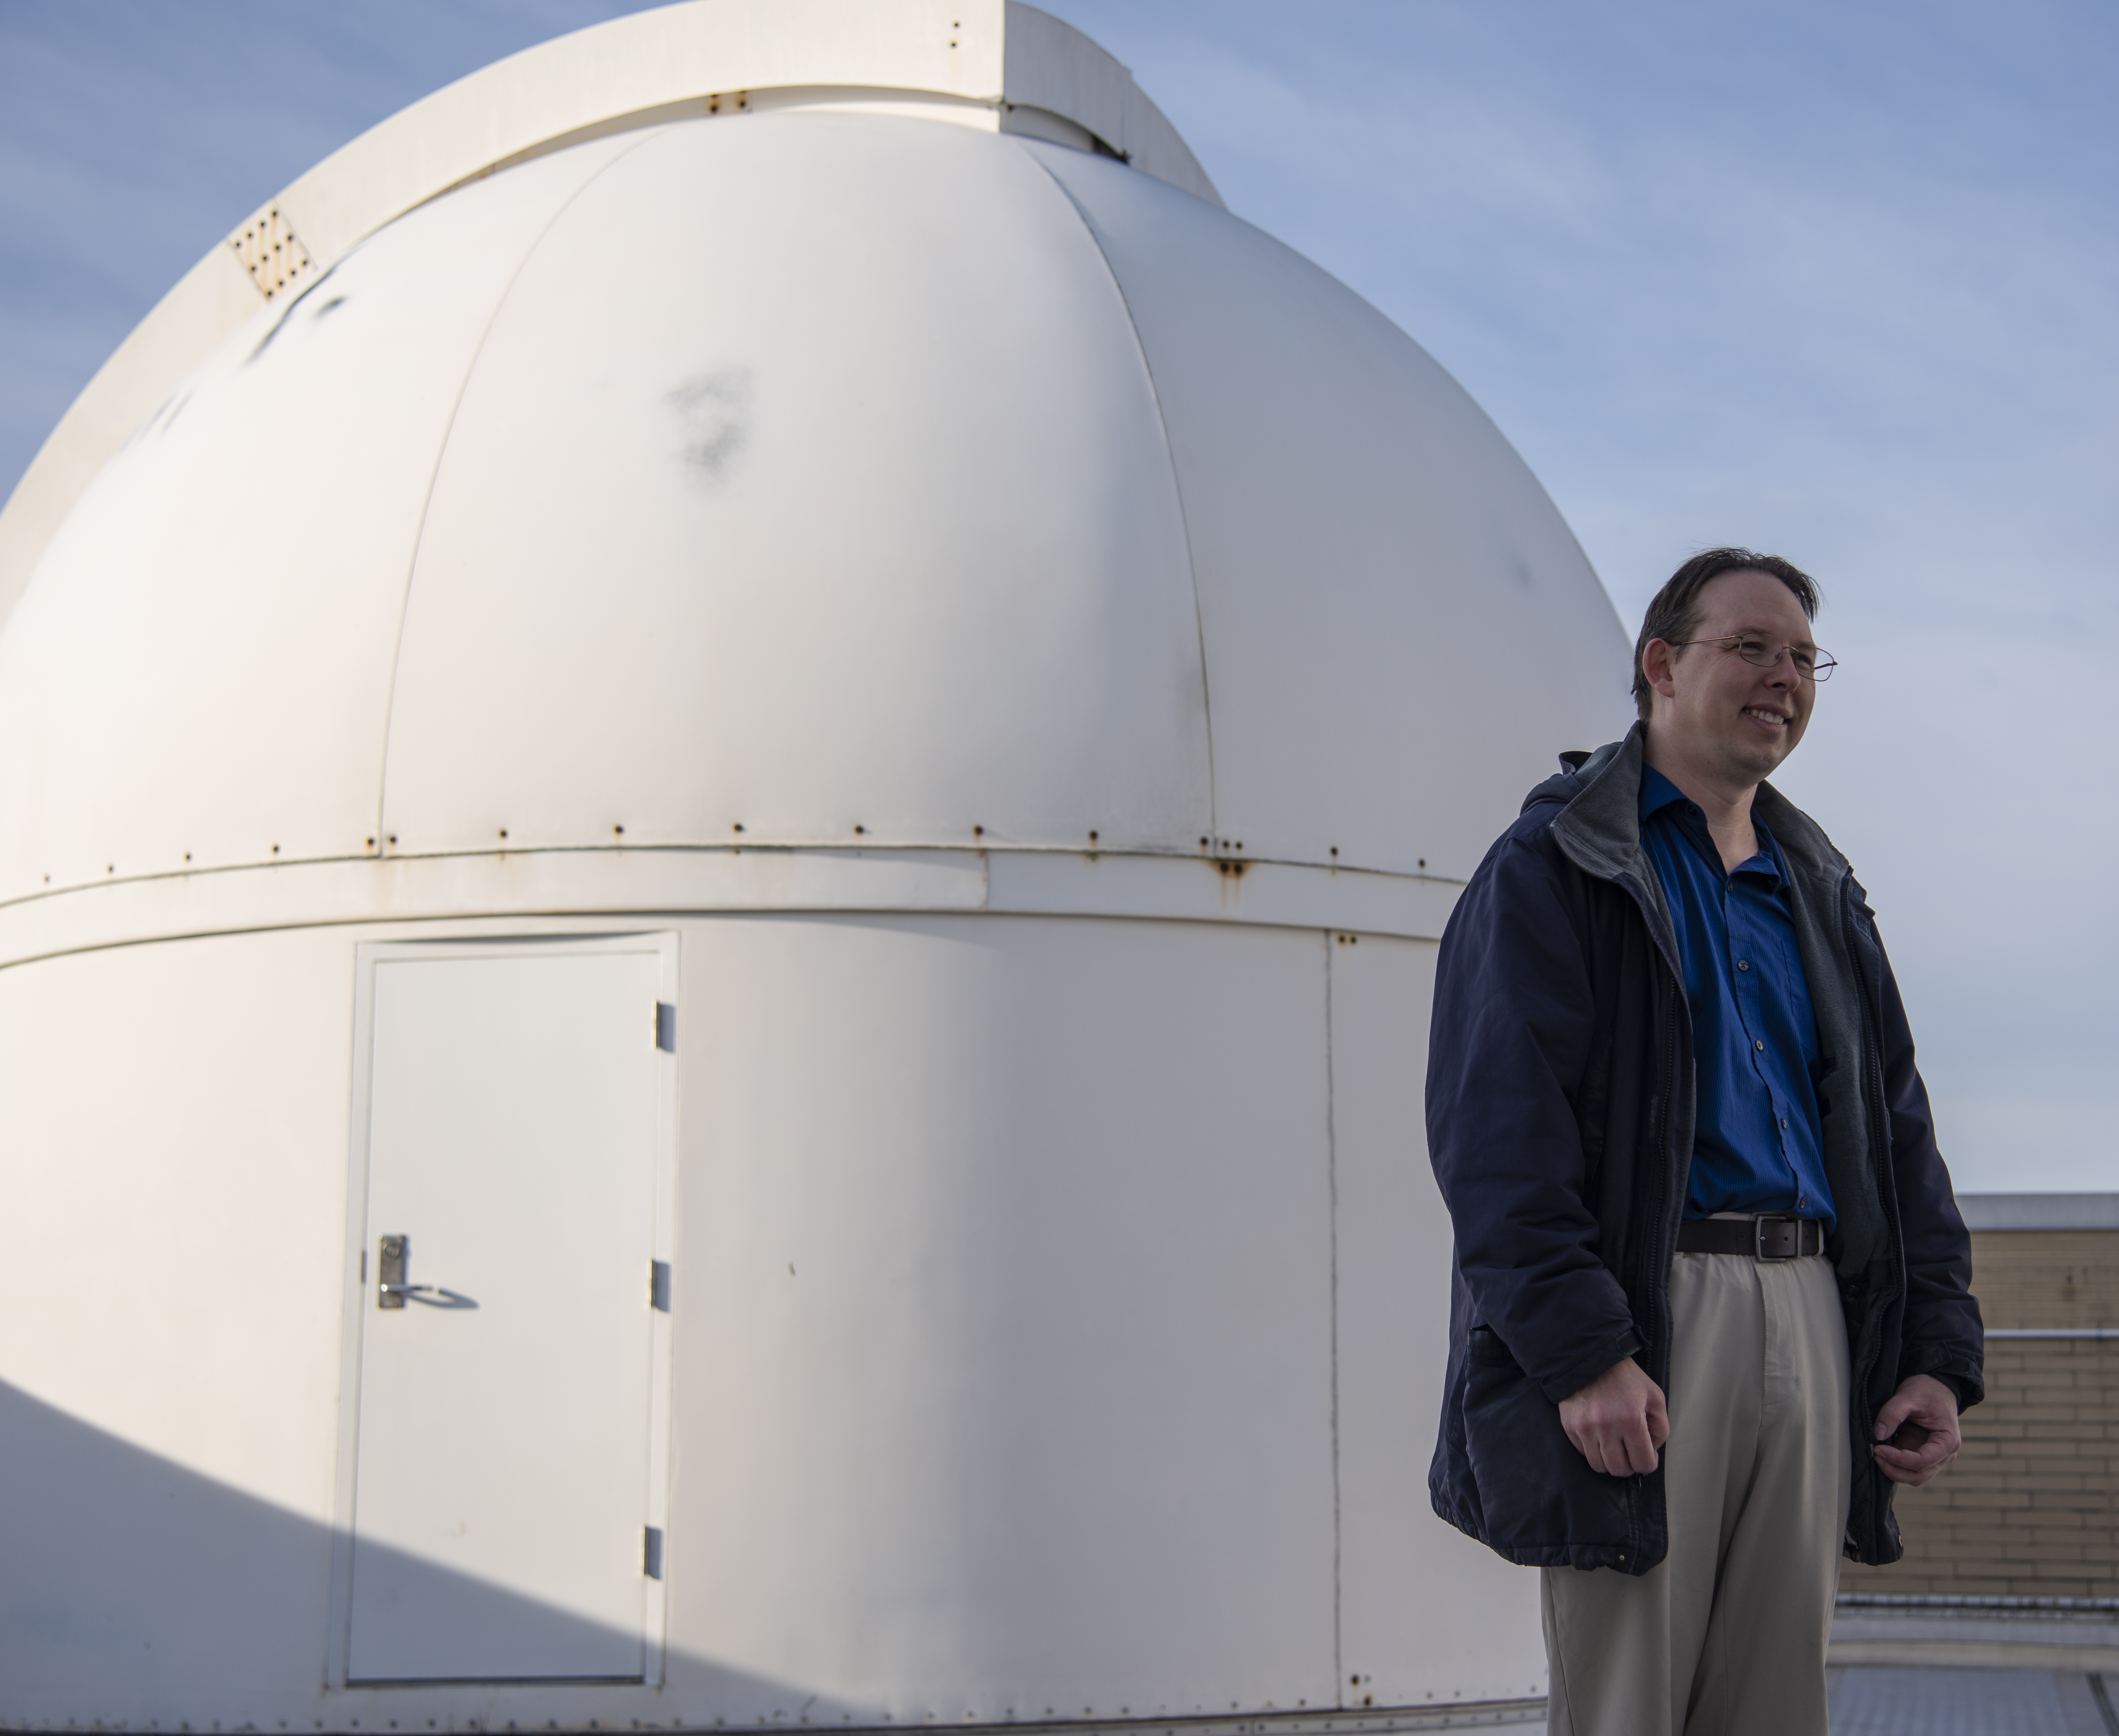 Are we alone in the universe? Penn State program searches for intelligent life in outer space